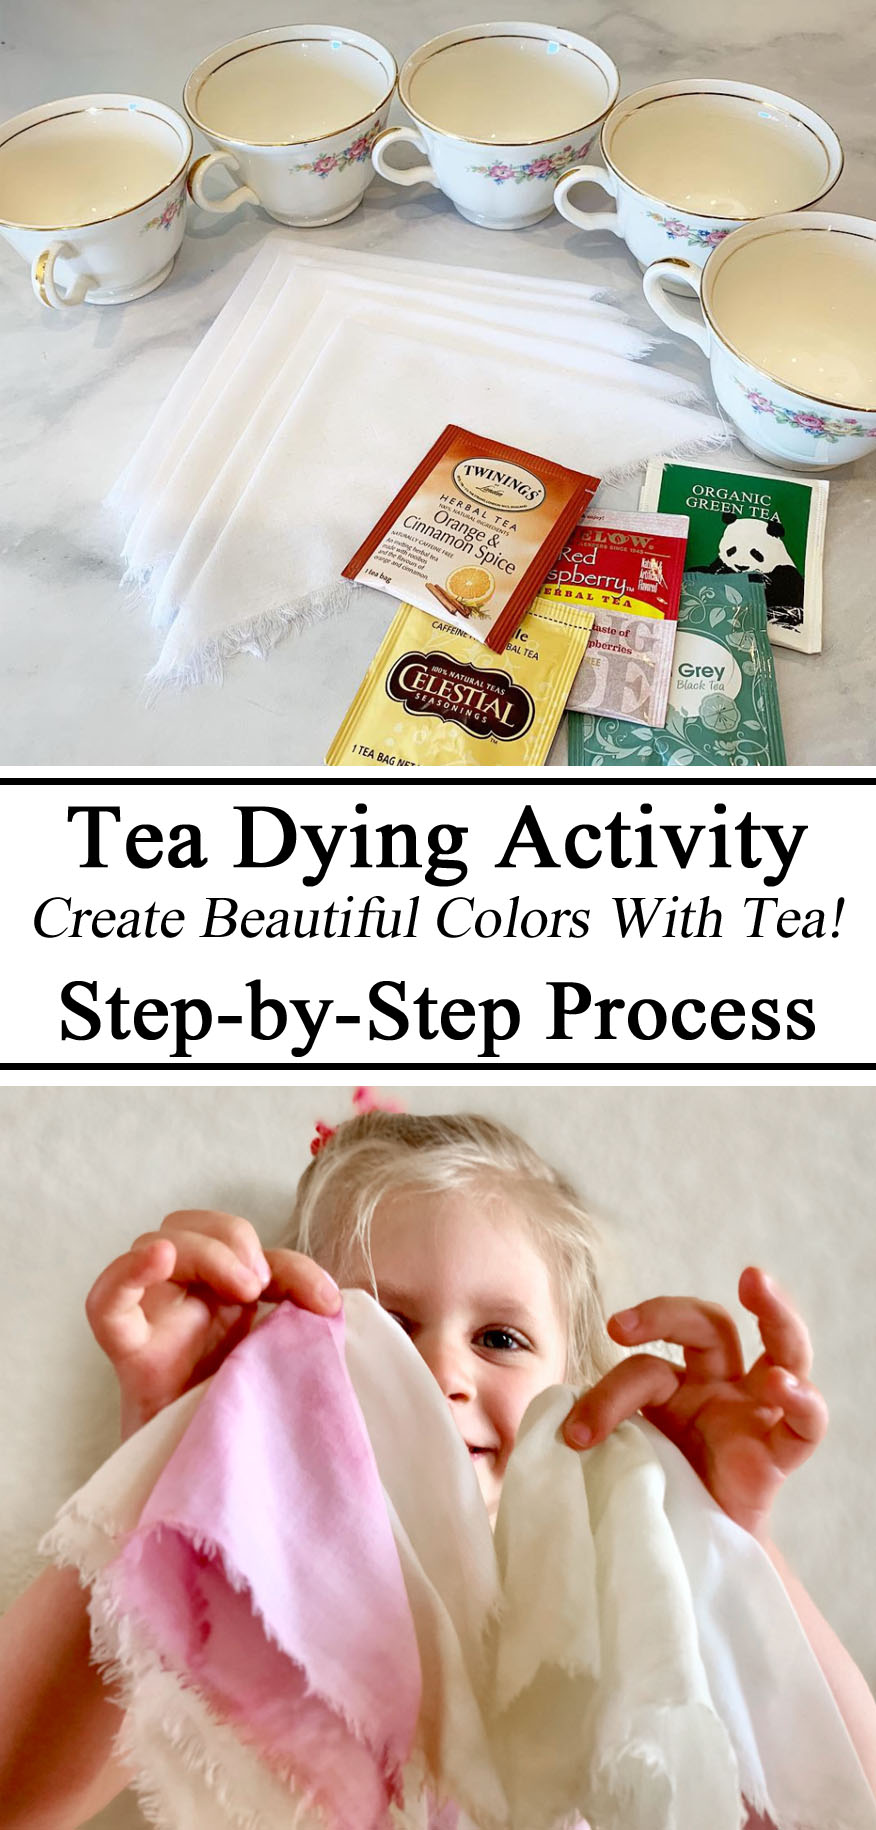 Tea Dying Activity Beautiful Colors English England Unit Afternoon Tea Learning About History Fabric Dyes Natural High Tea #travelingthroughlearning Educational Preschool PreK Kindergarten Learn Resources Hands on Learning STEM STEAM Education Waldorf Learning to Unschooling Early Childhood Totschooling Ideas Inspiration